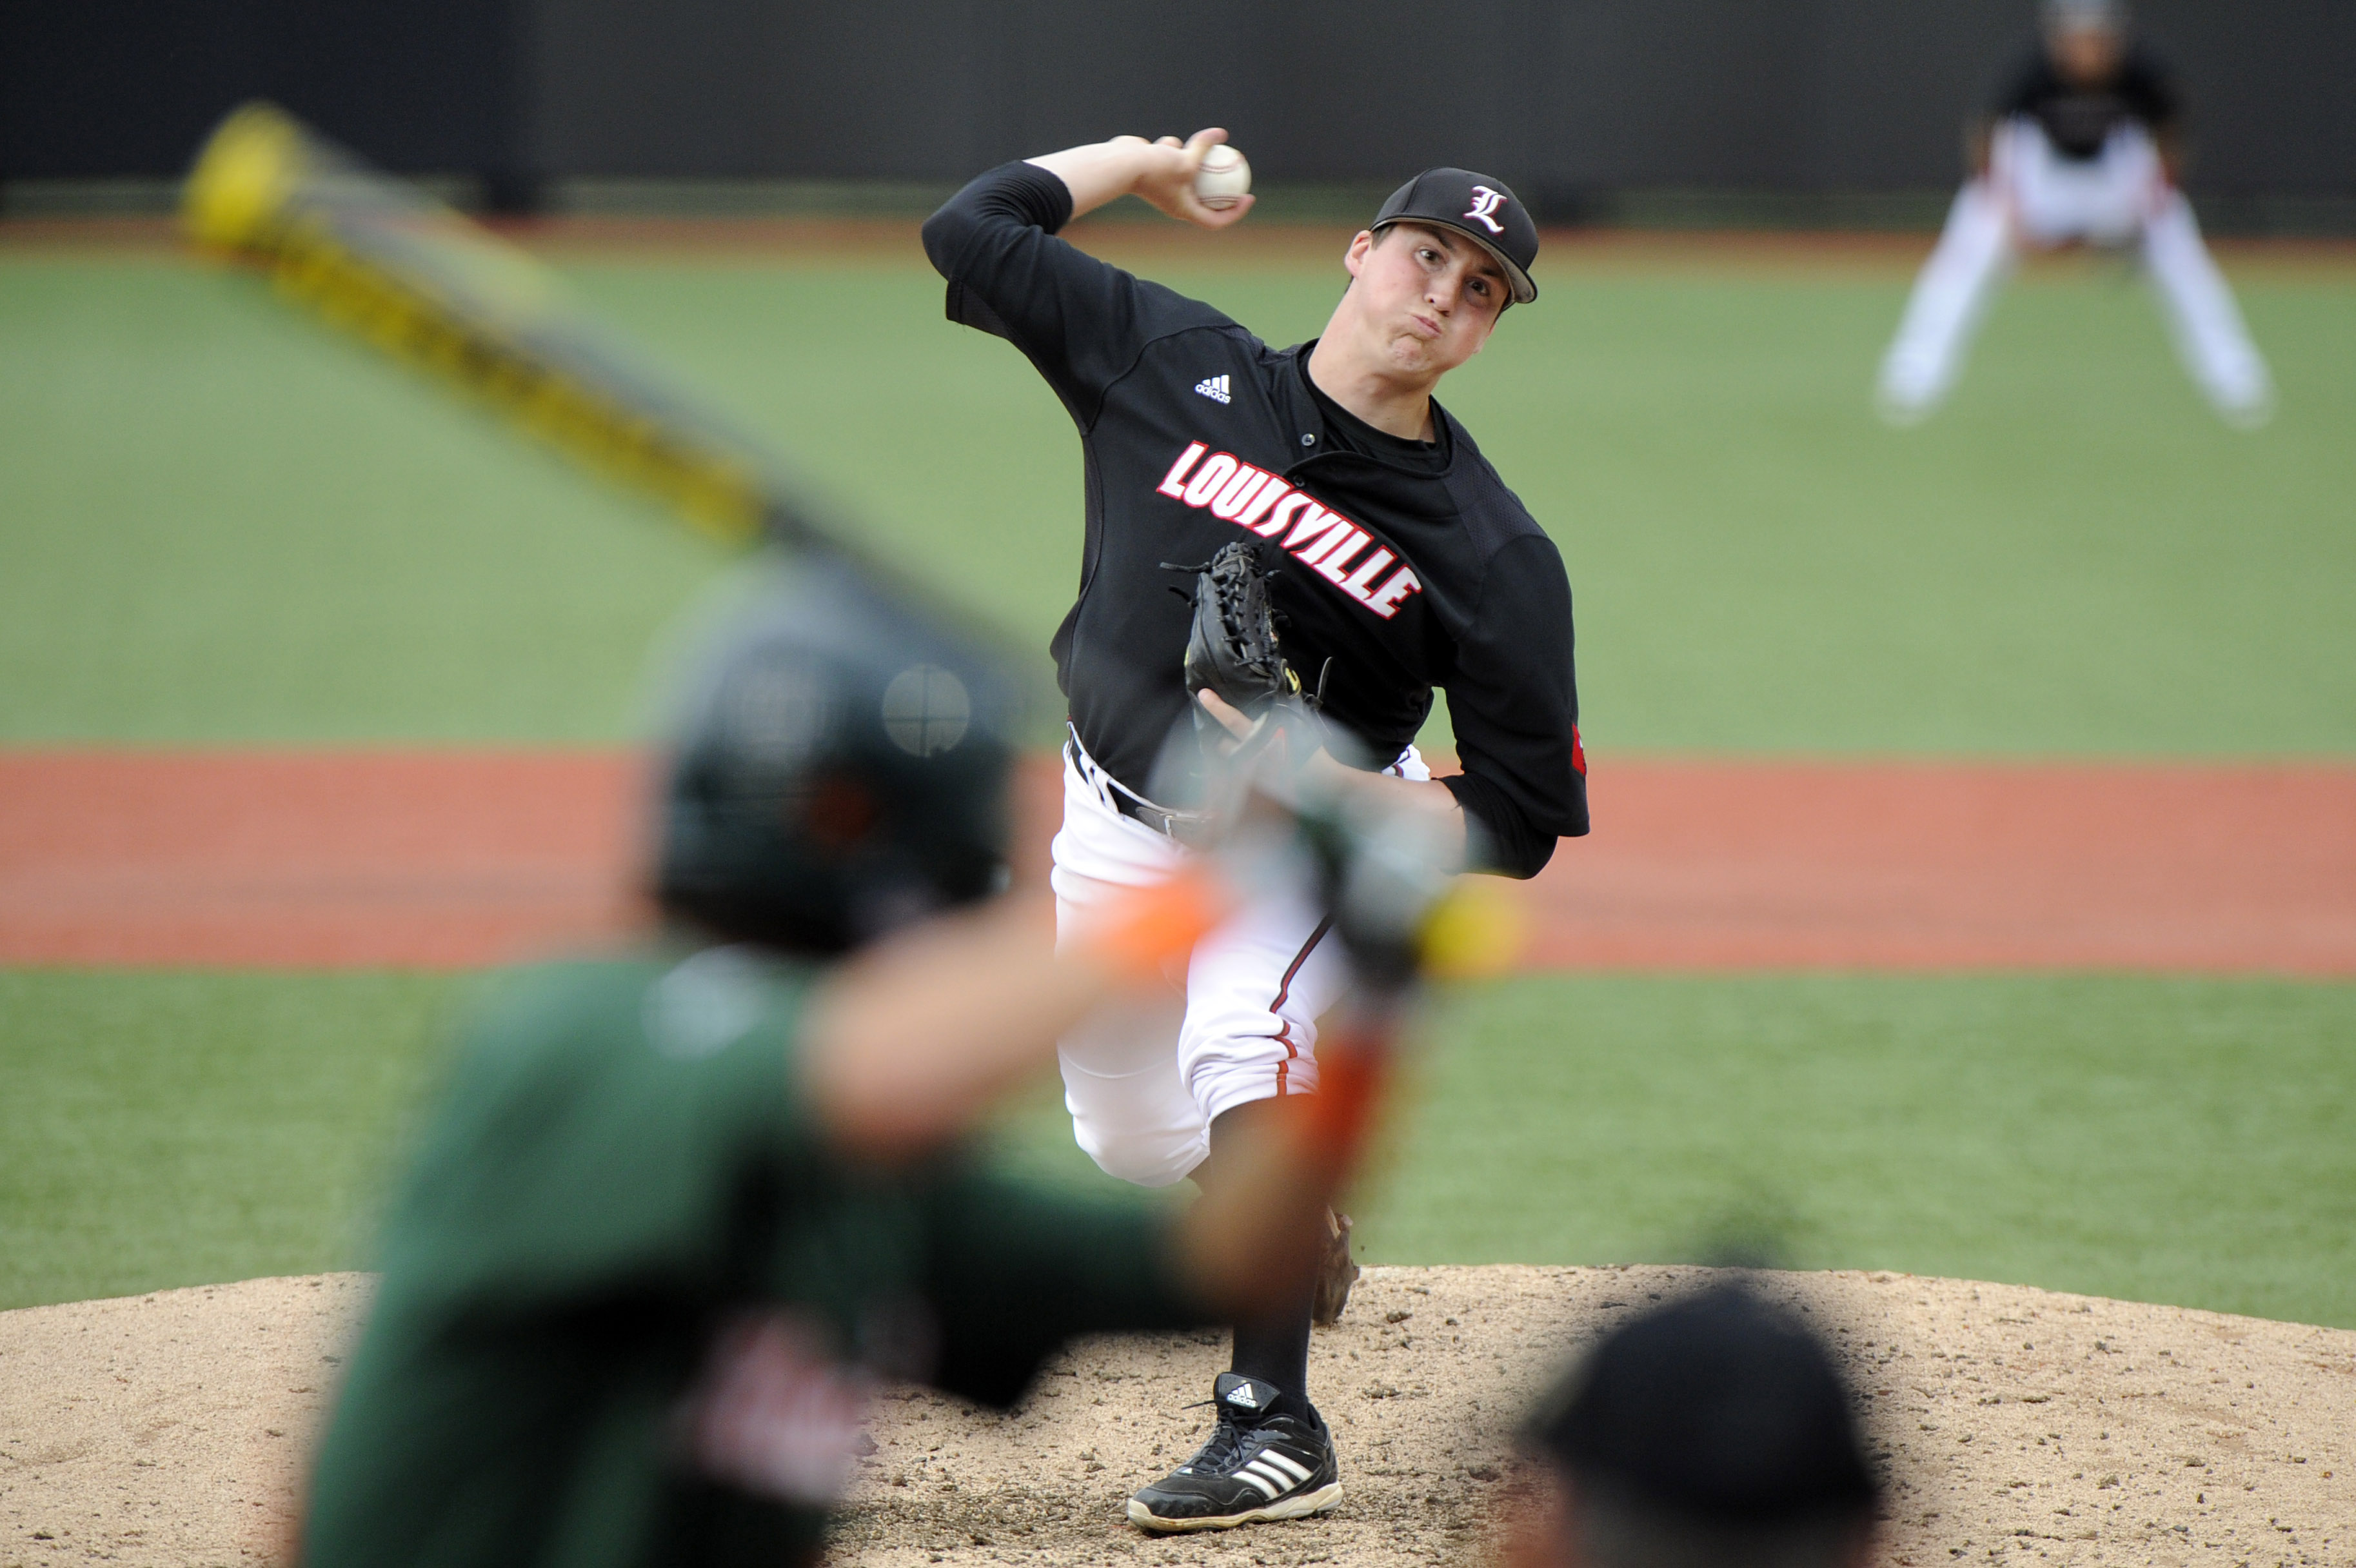 Kyle Funkhouser was a sure top-15 pick, but now no one is certain